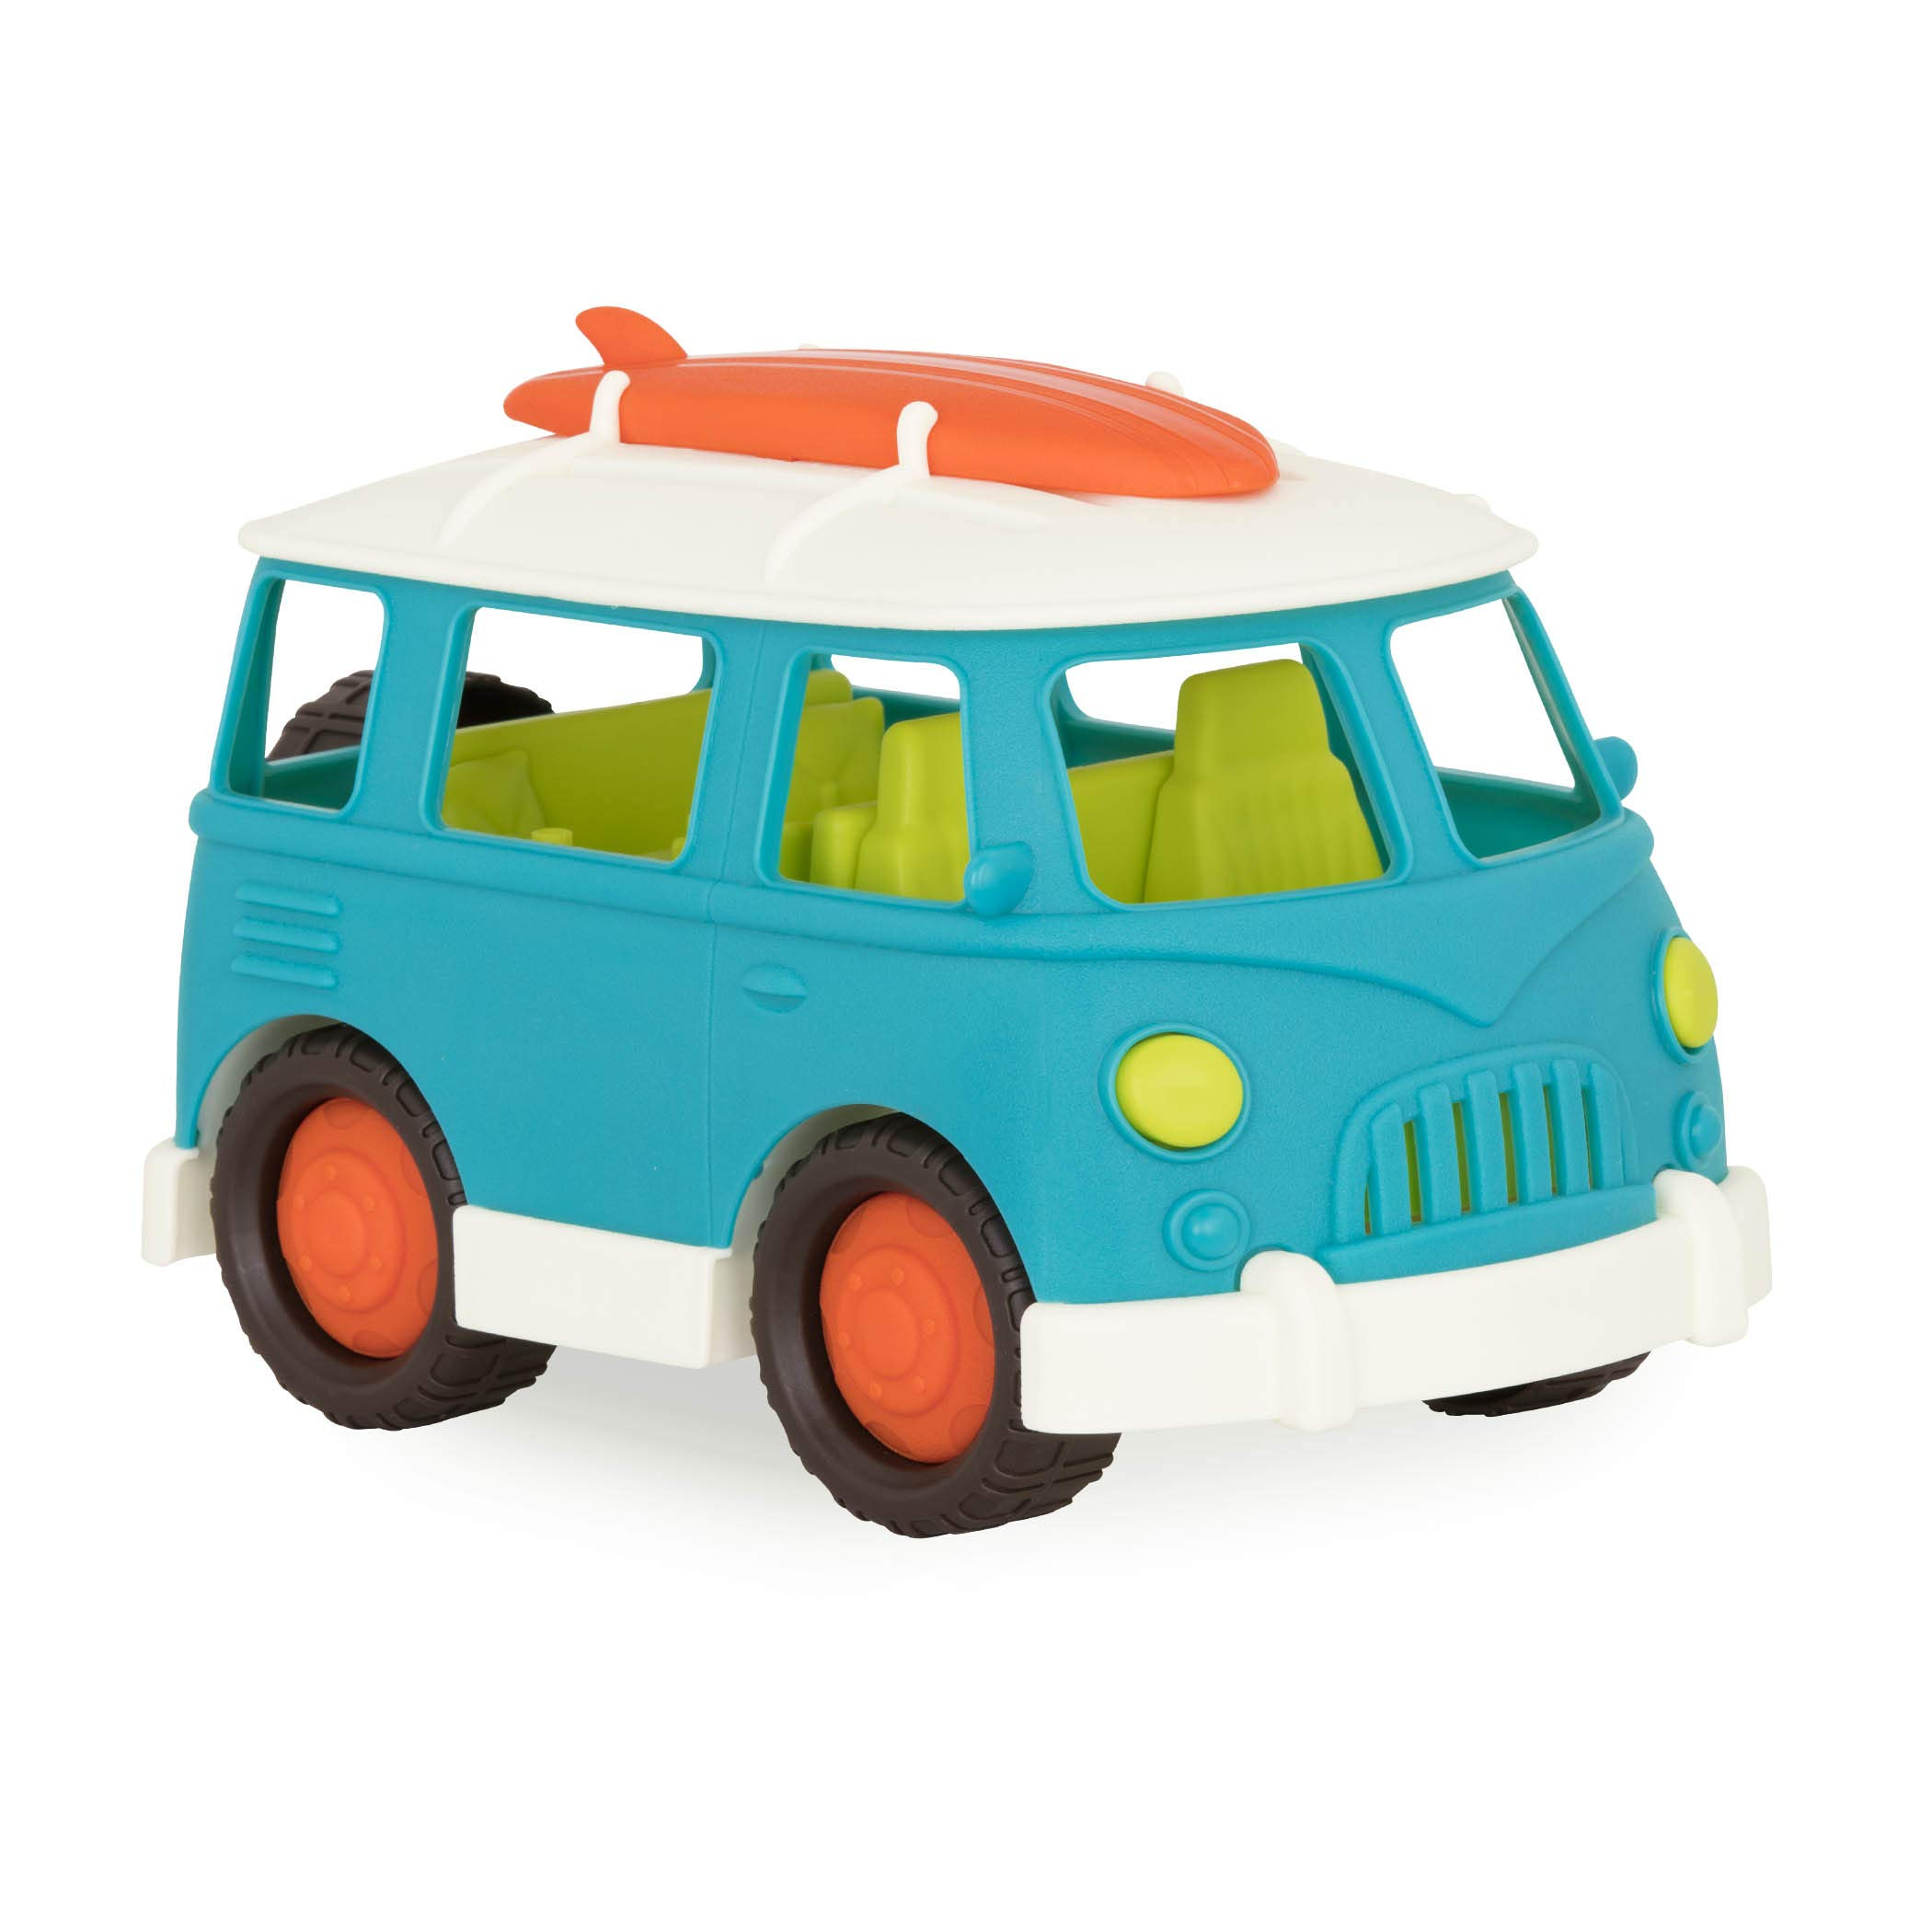 Wonder Wheels by Battat - Camper Van - Toy Truck with Opening Roof & Detailed Interior for Kids Age 1 & Up by Wonder Wheels by Battat